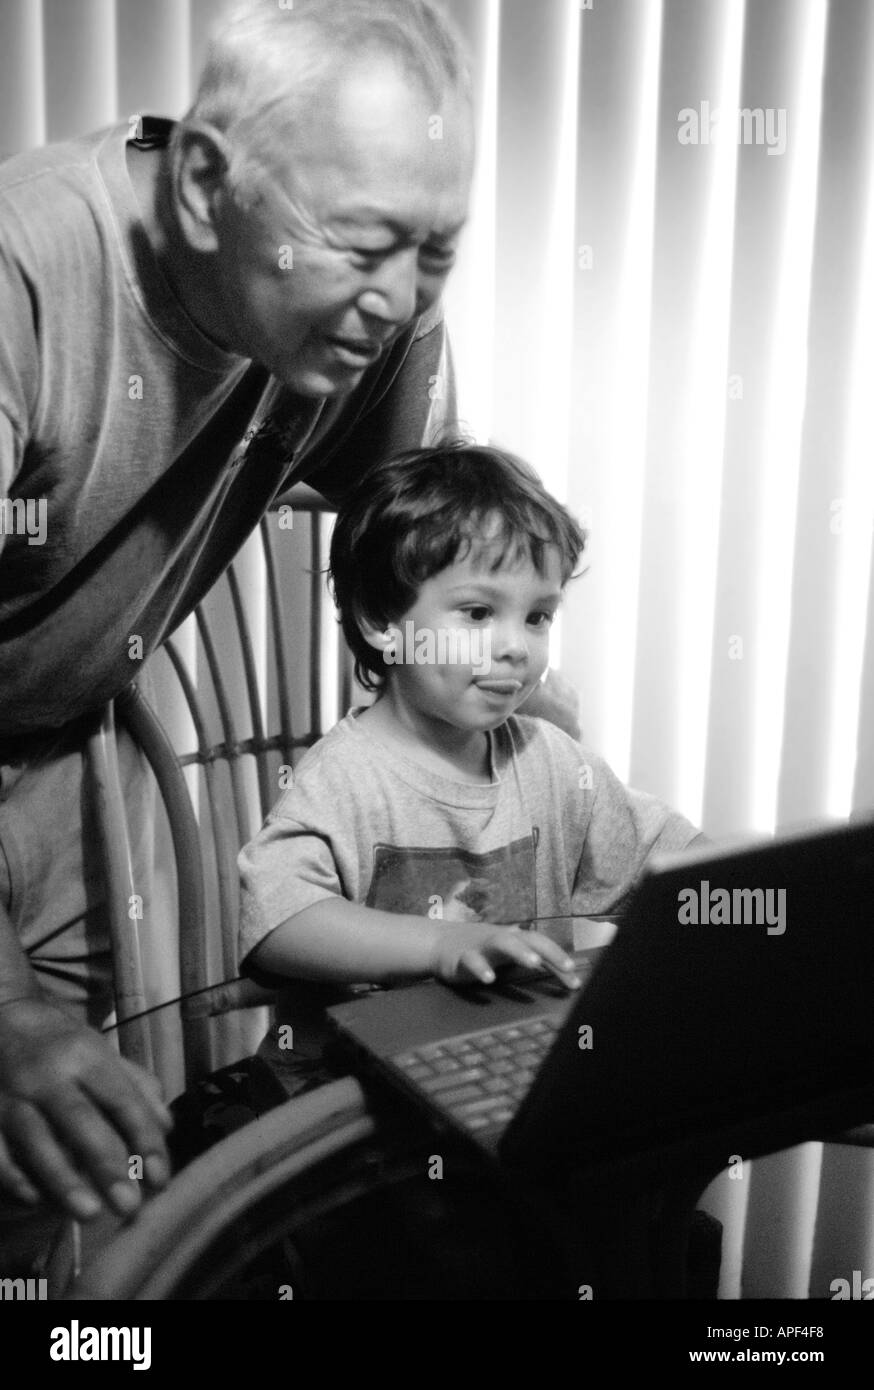 4 year old boy showing elderly asian man how to use lap top computer. B&W. Vertical - Stock Image